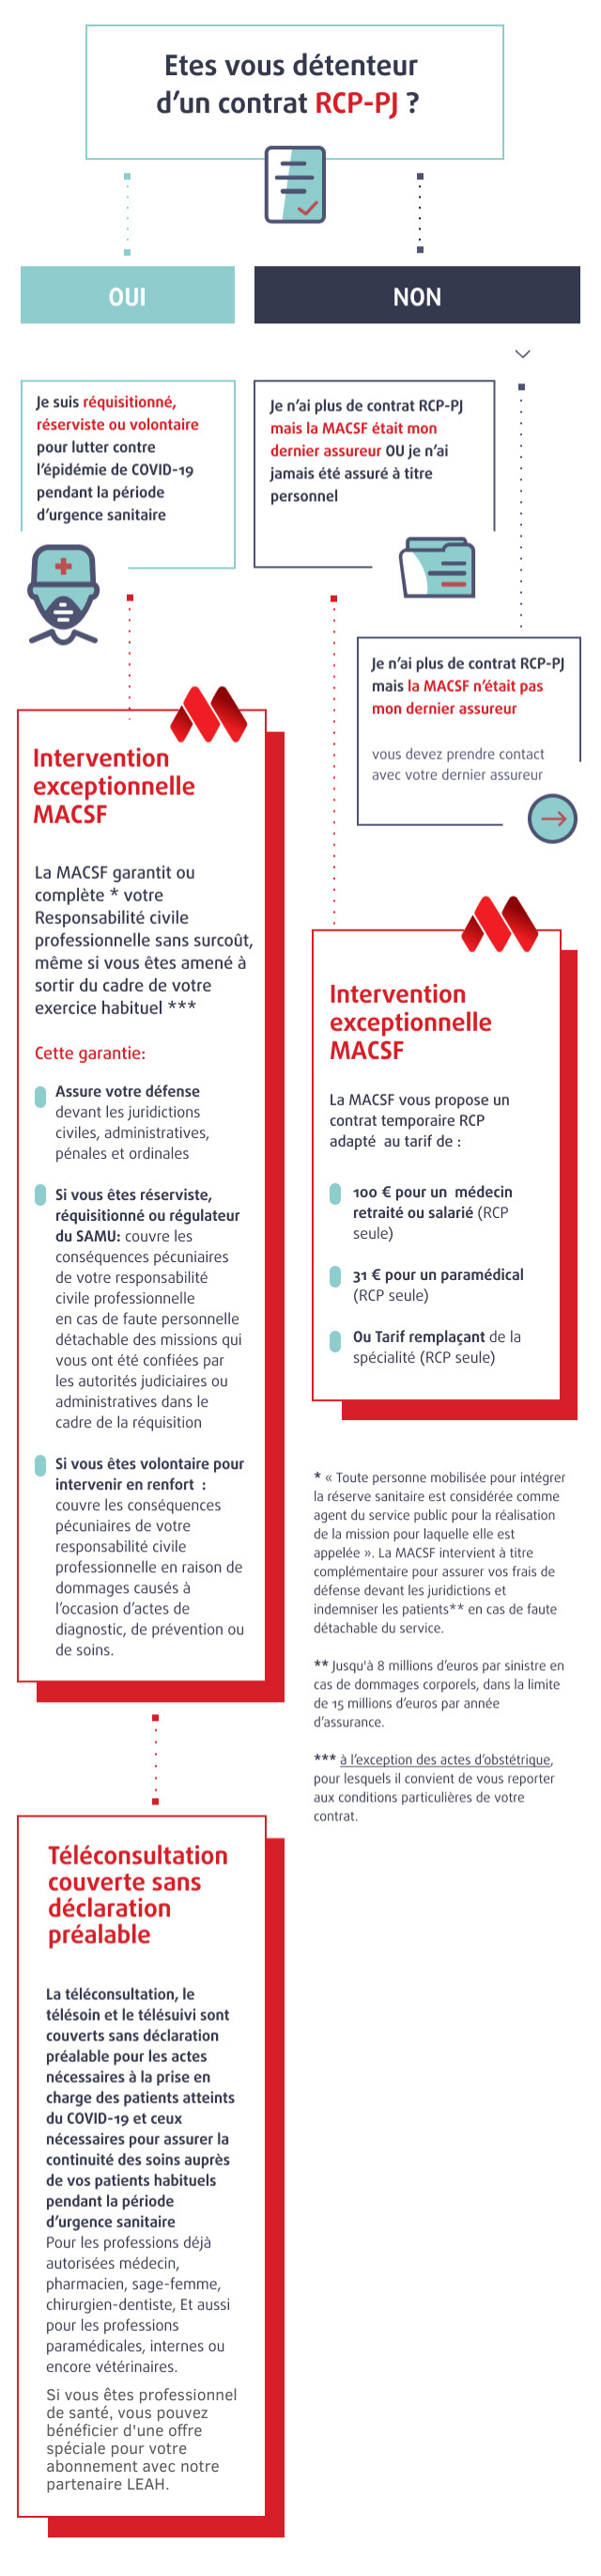 Infographie RCP Covid